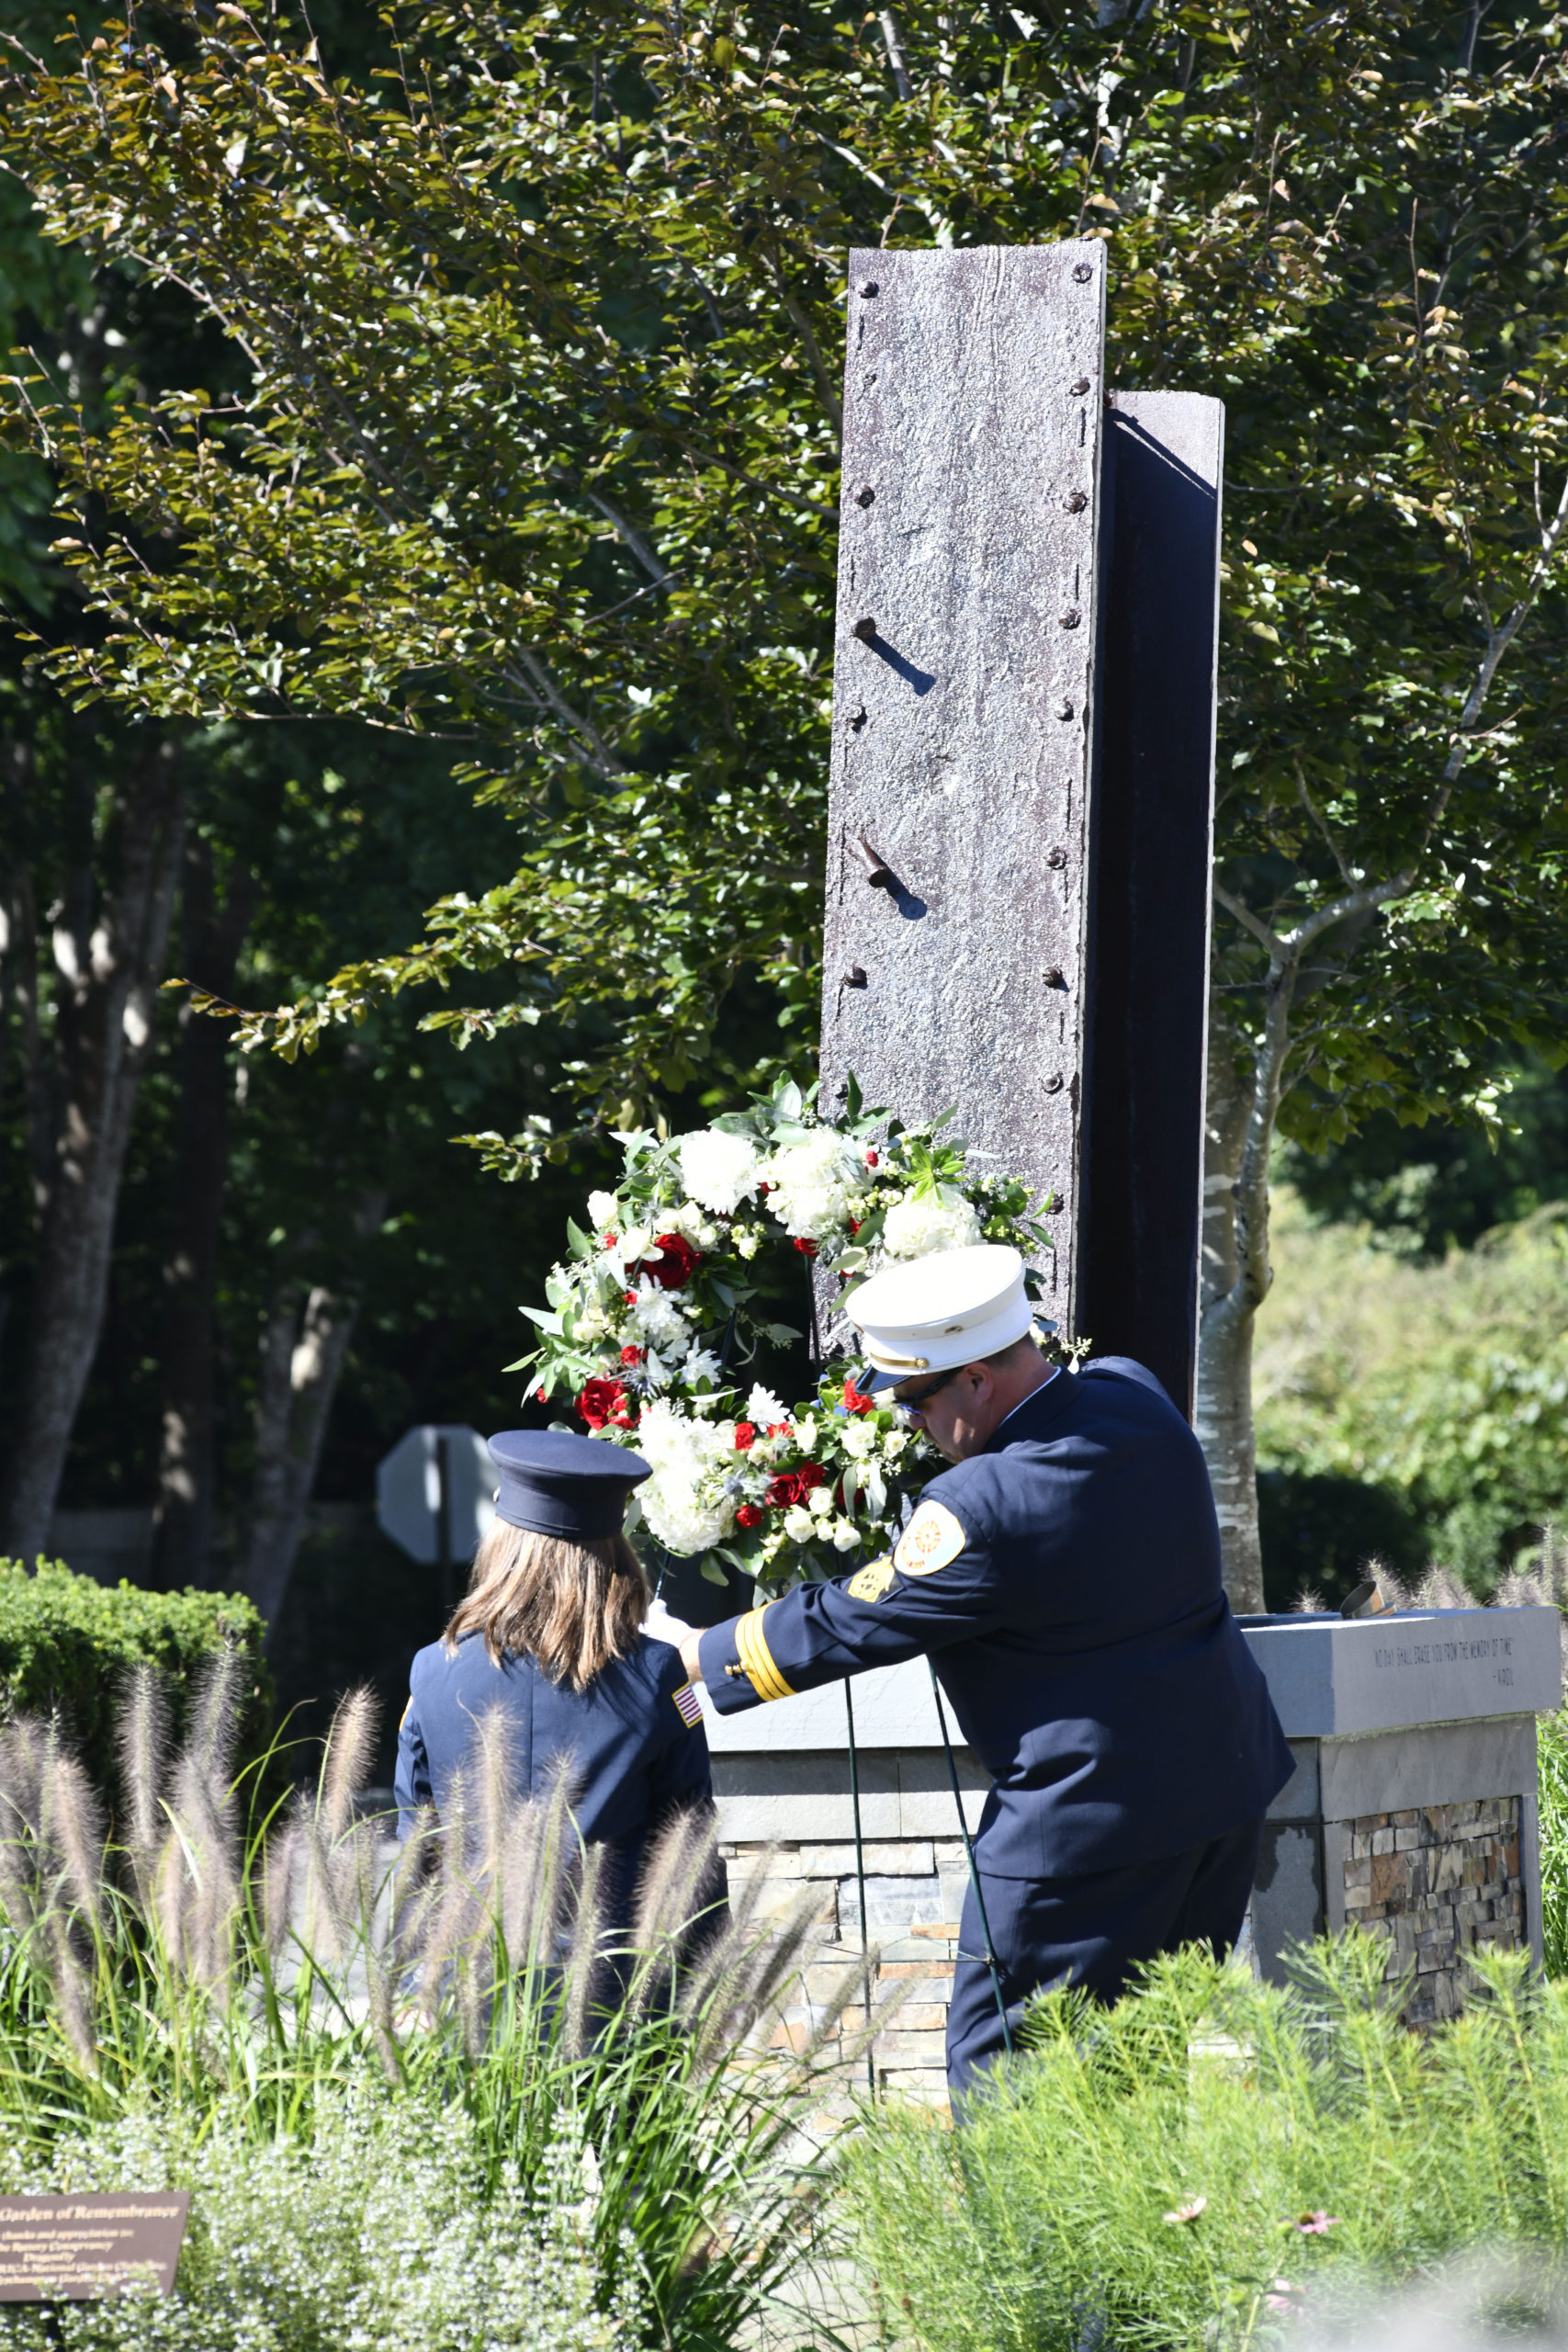 The wreath is laid at the rededication of the Quogue 9/11 Memorial on Saturday.